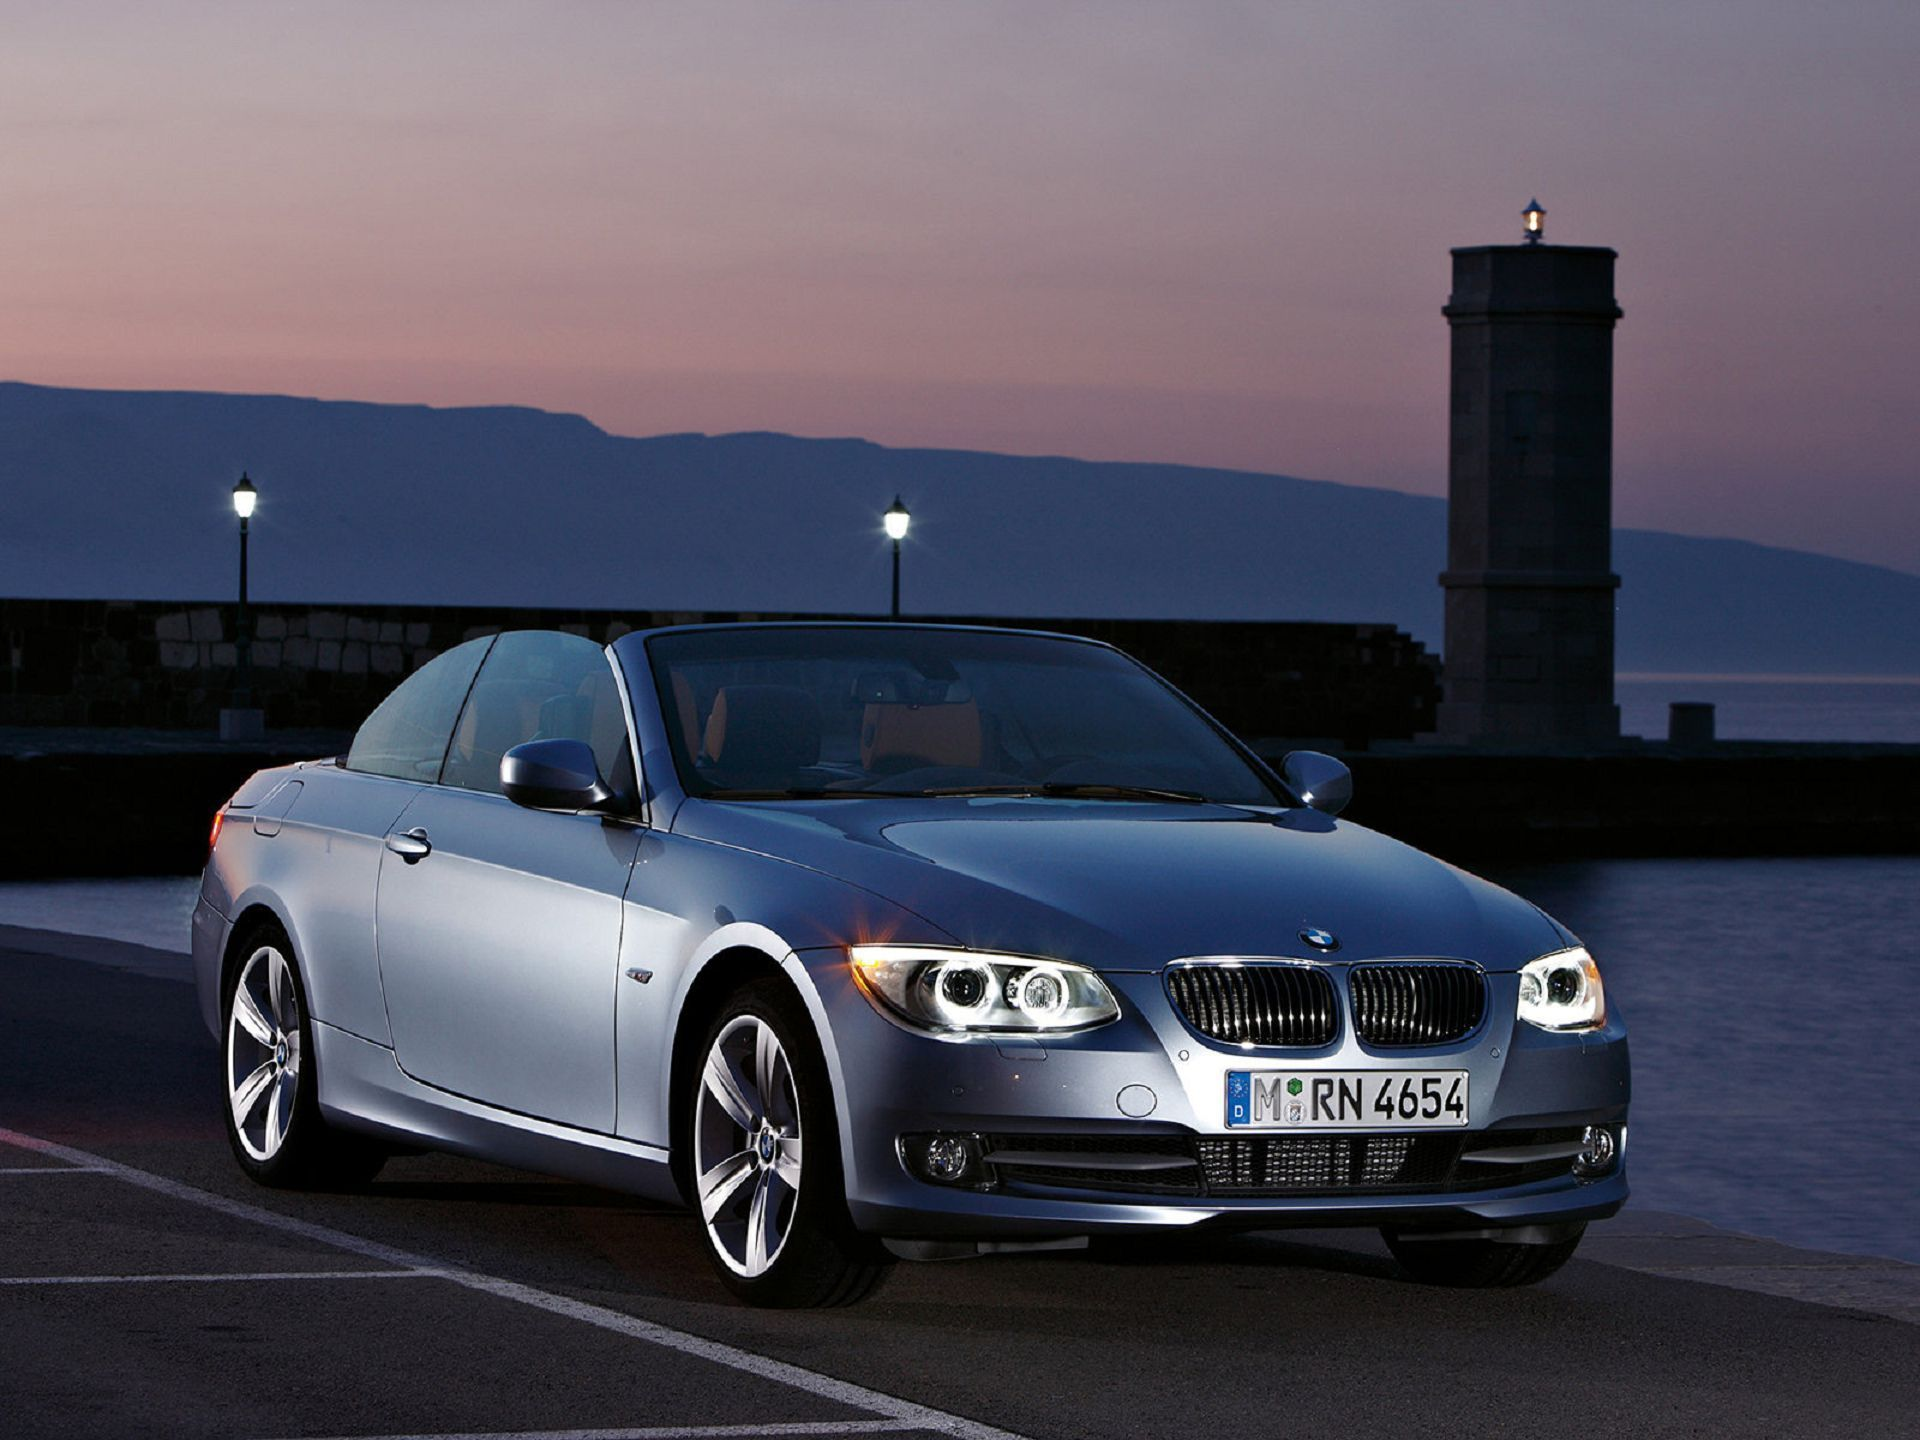 2011 bmw s rie 3 convertible 002 prata cool cars wallpapers